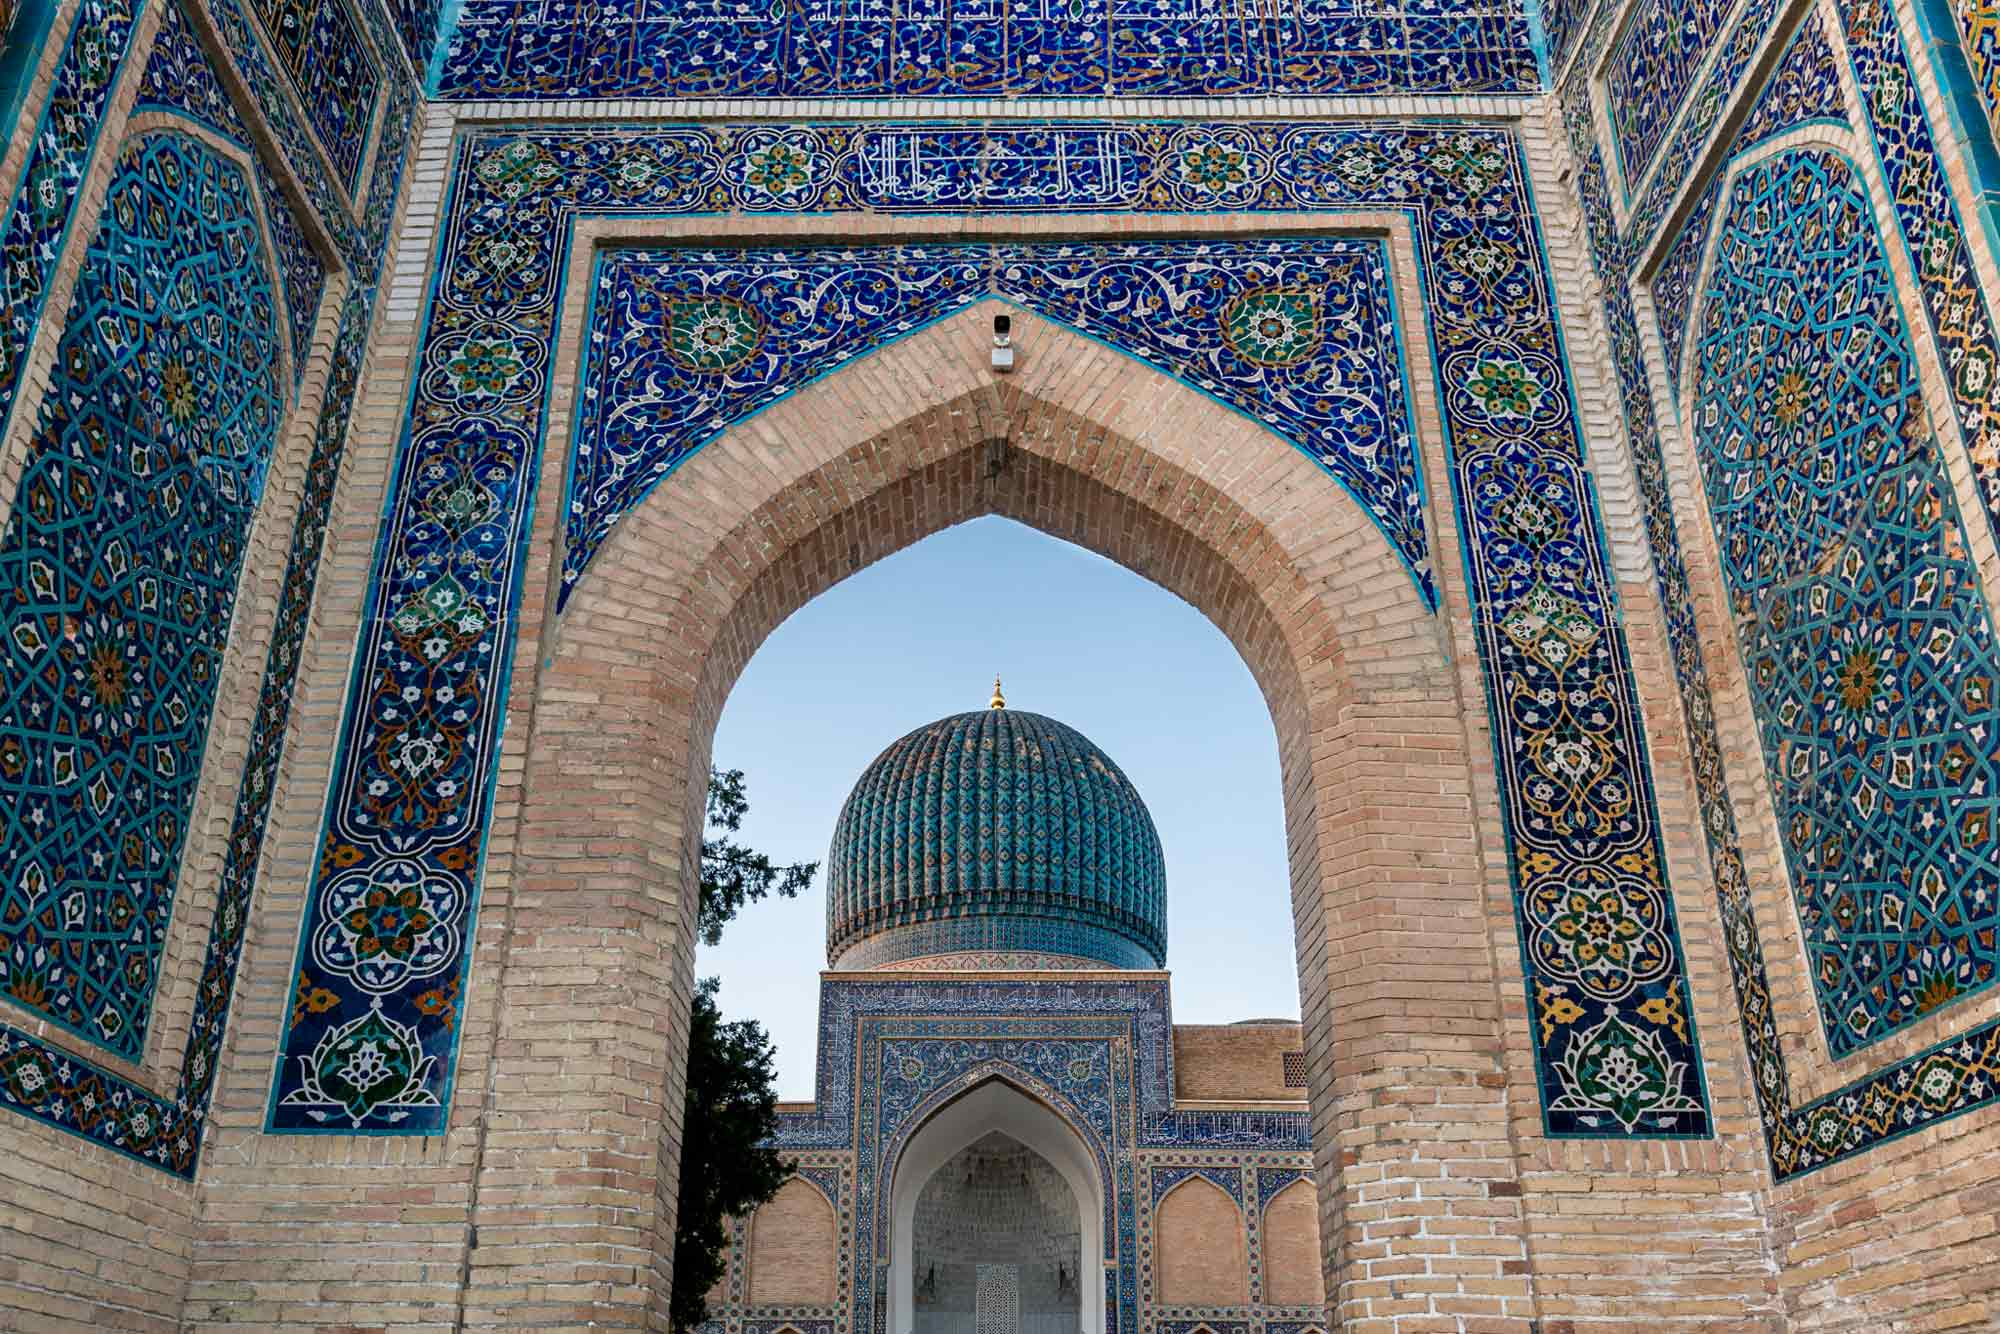 15 BEST Things to Do in Samarkand, Uzbekistan (2021 Guide)